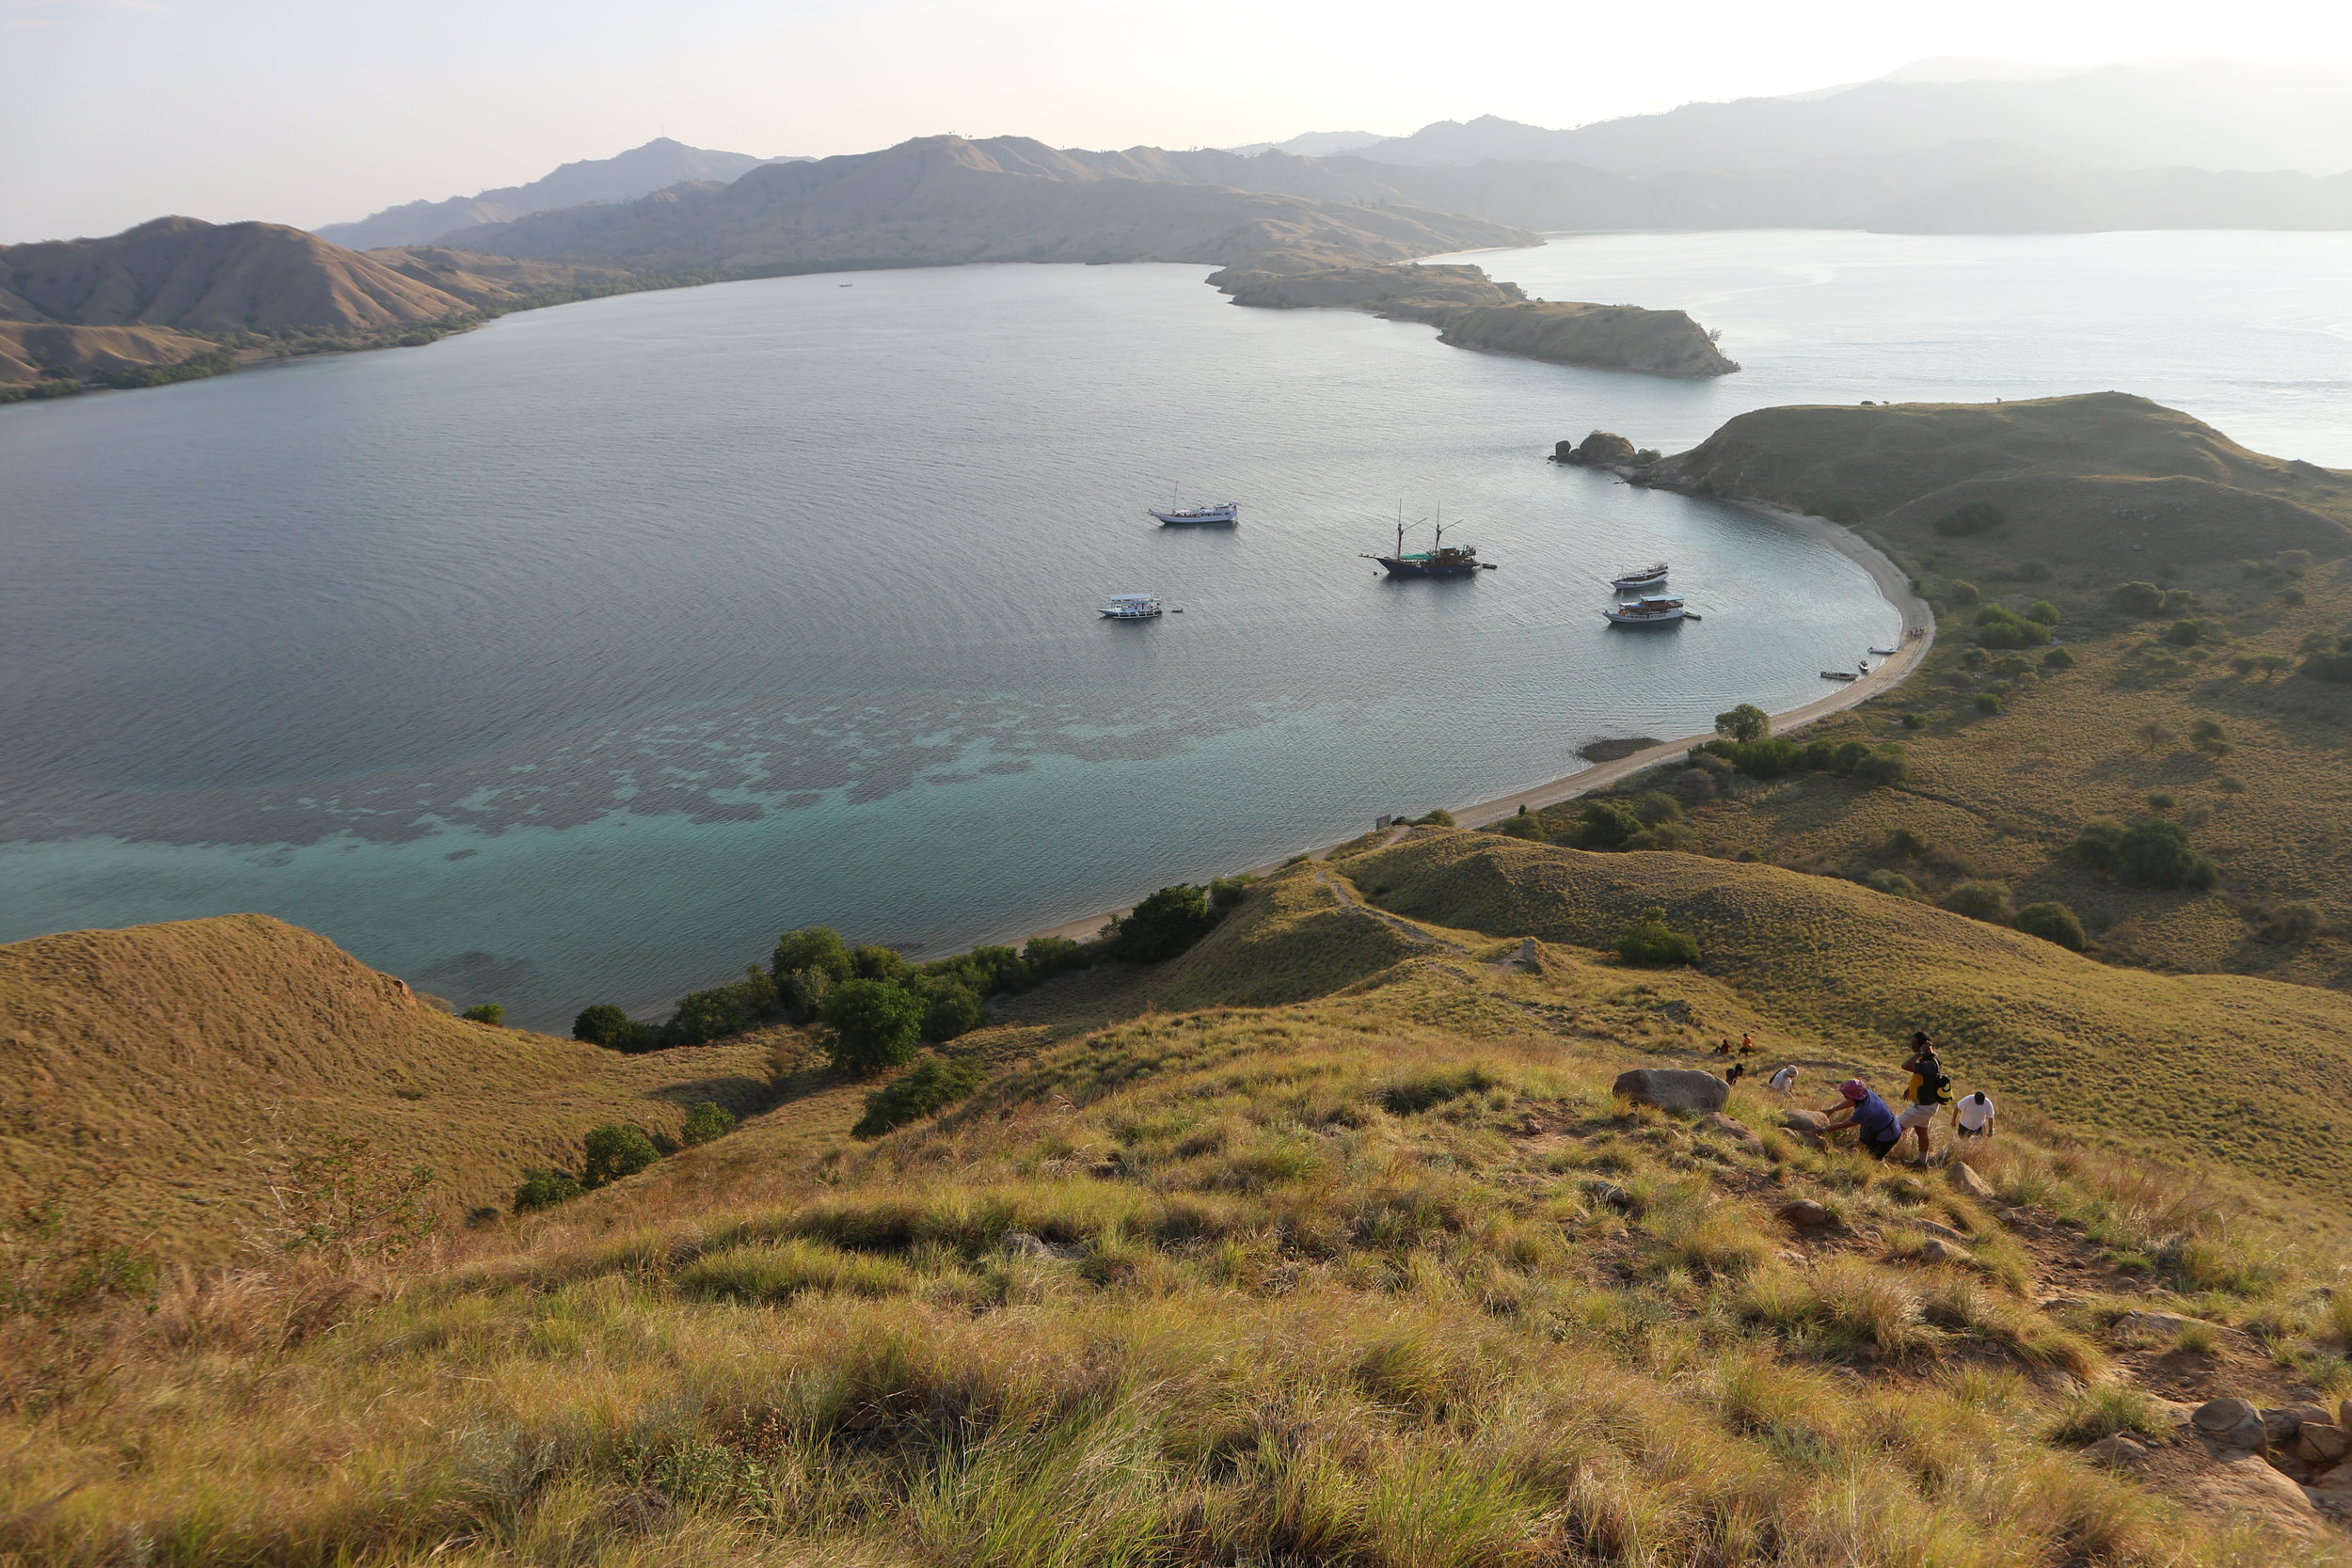 Gili Lawa Darat in Komodo National Park